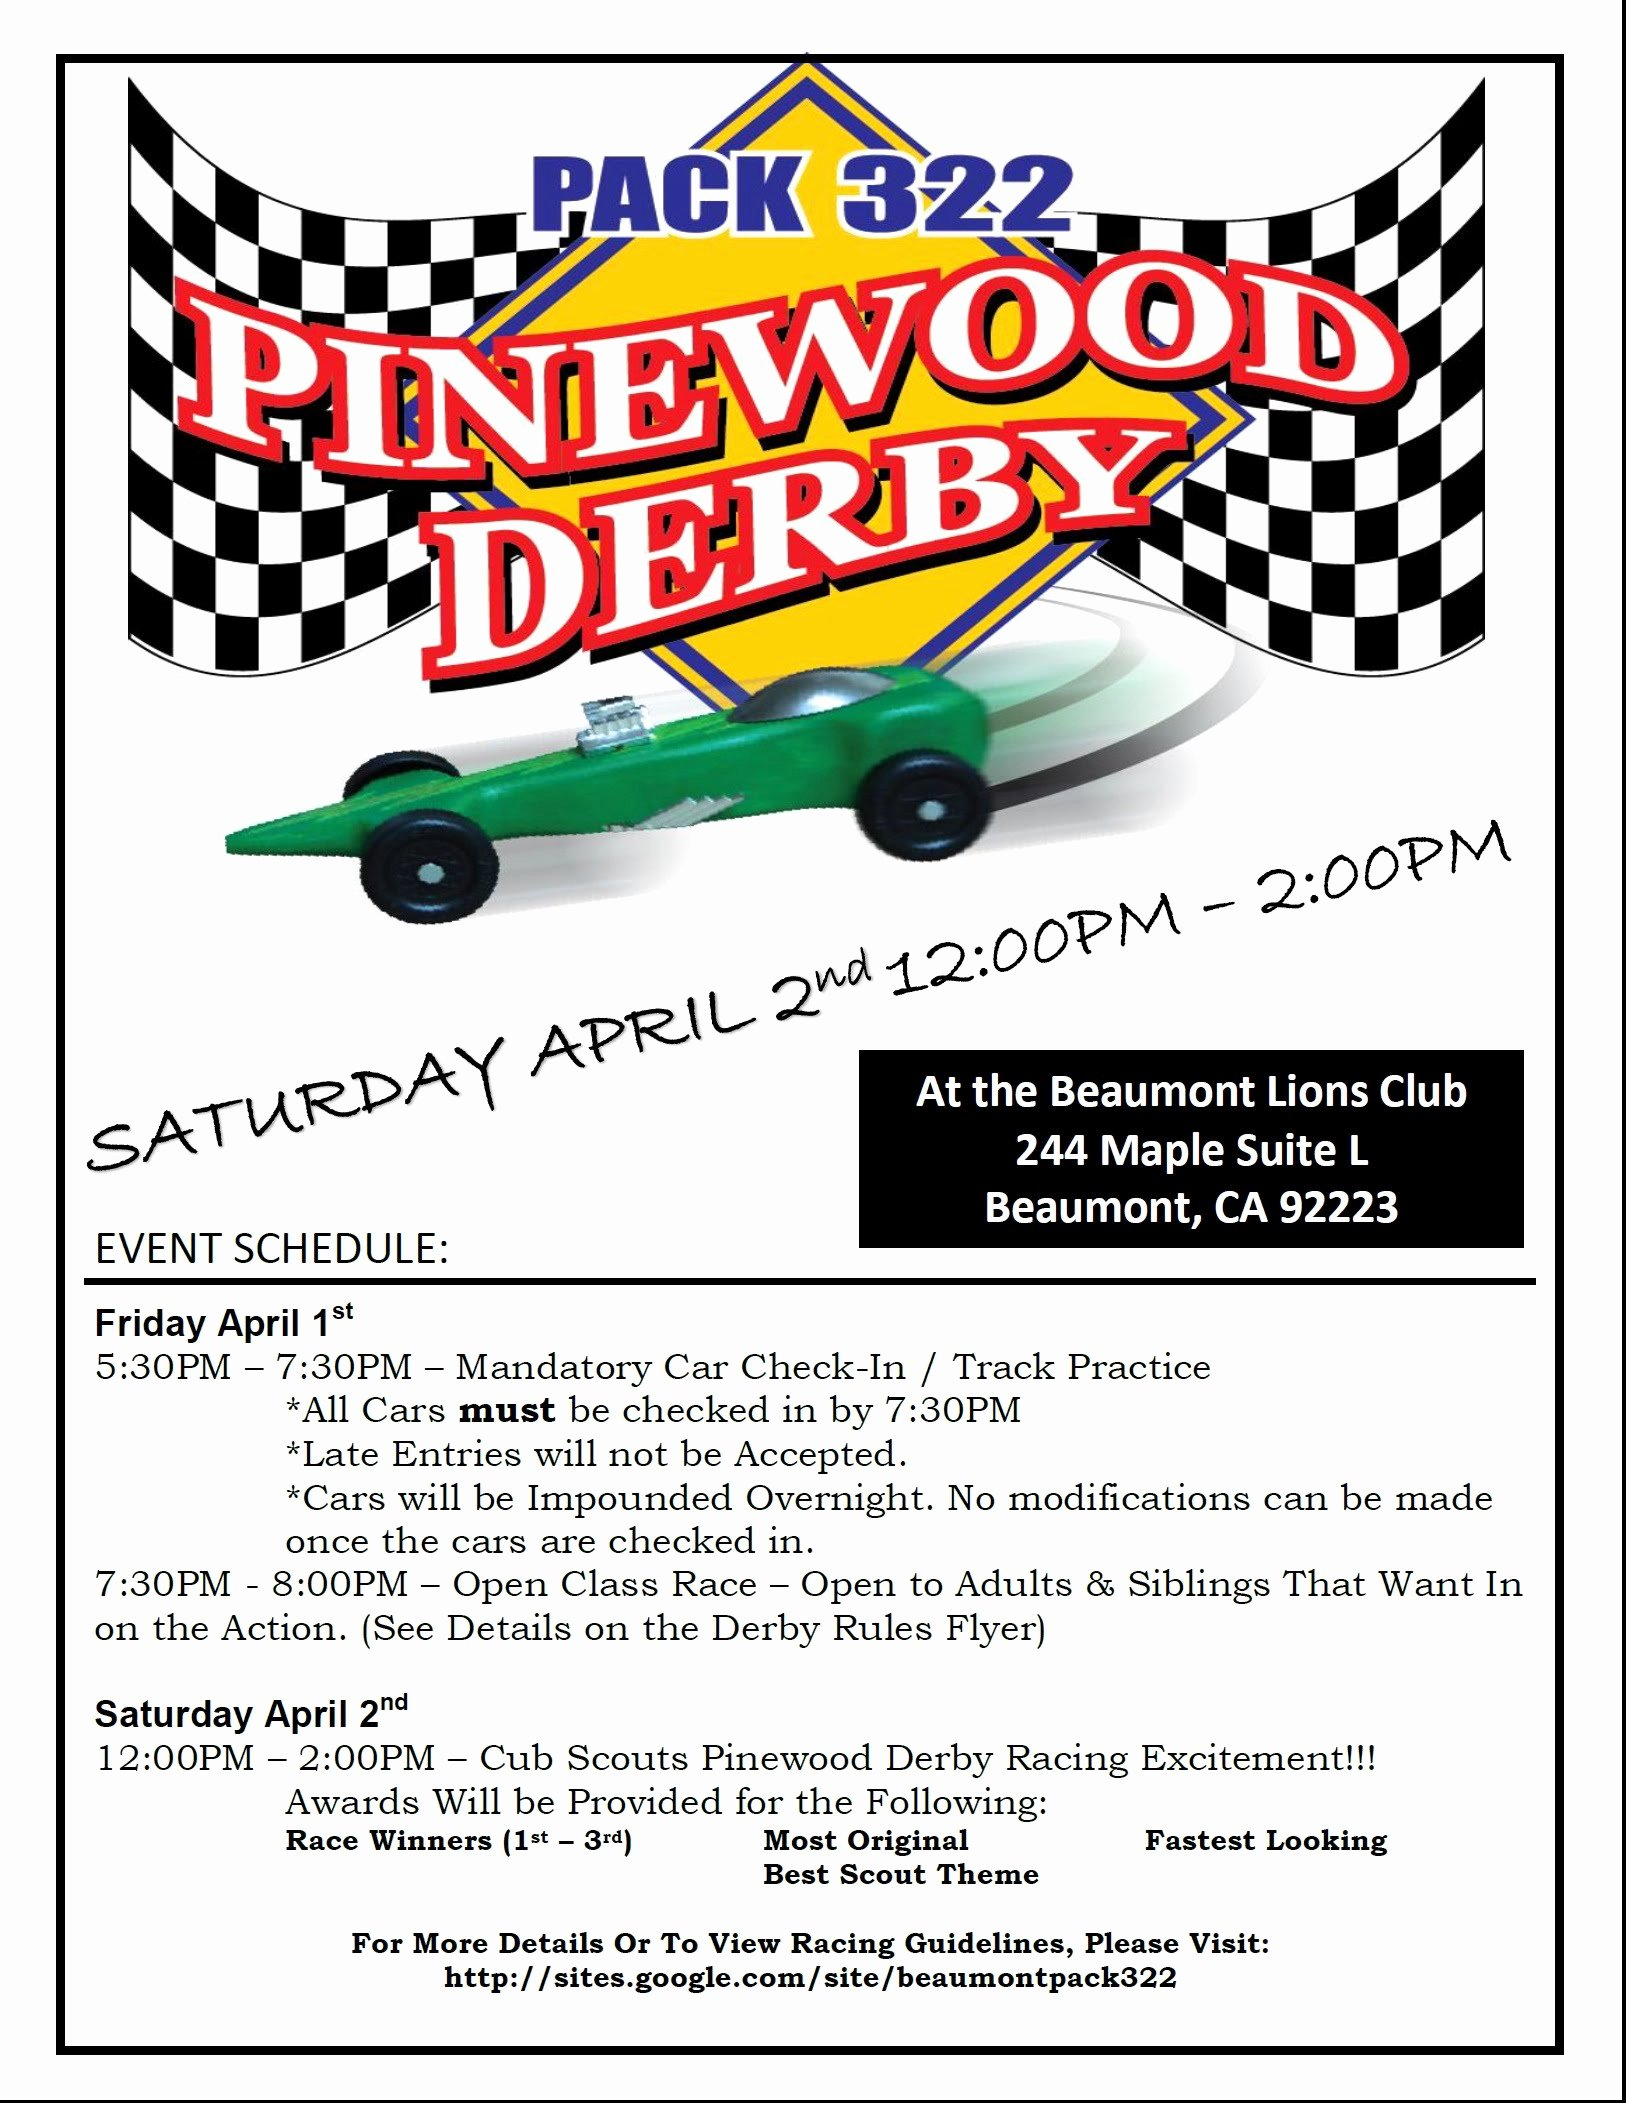 Pinewood Derby Flyer Template Luxury Pinewood Derby April 1 & 2 Pack 322 Beaumont Ca